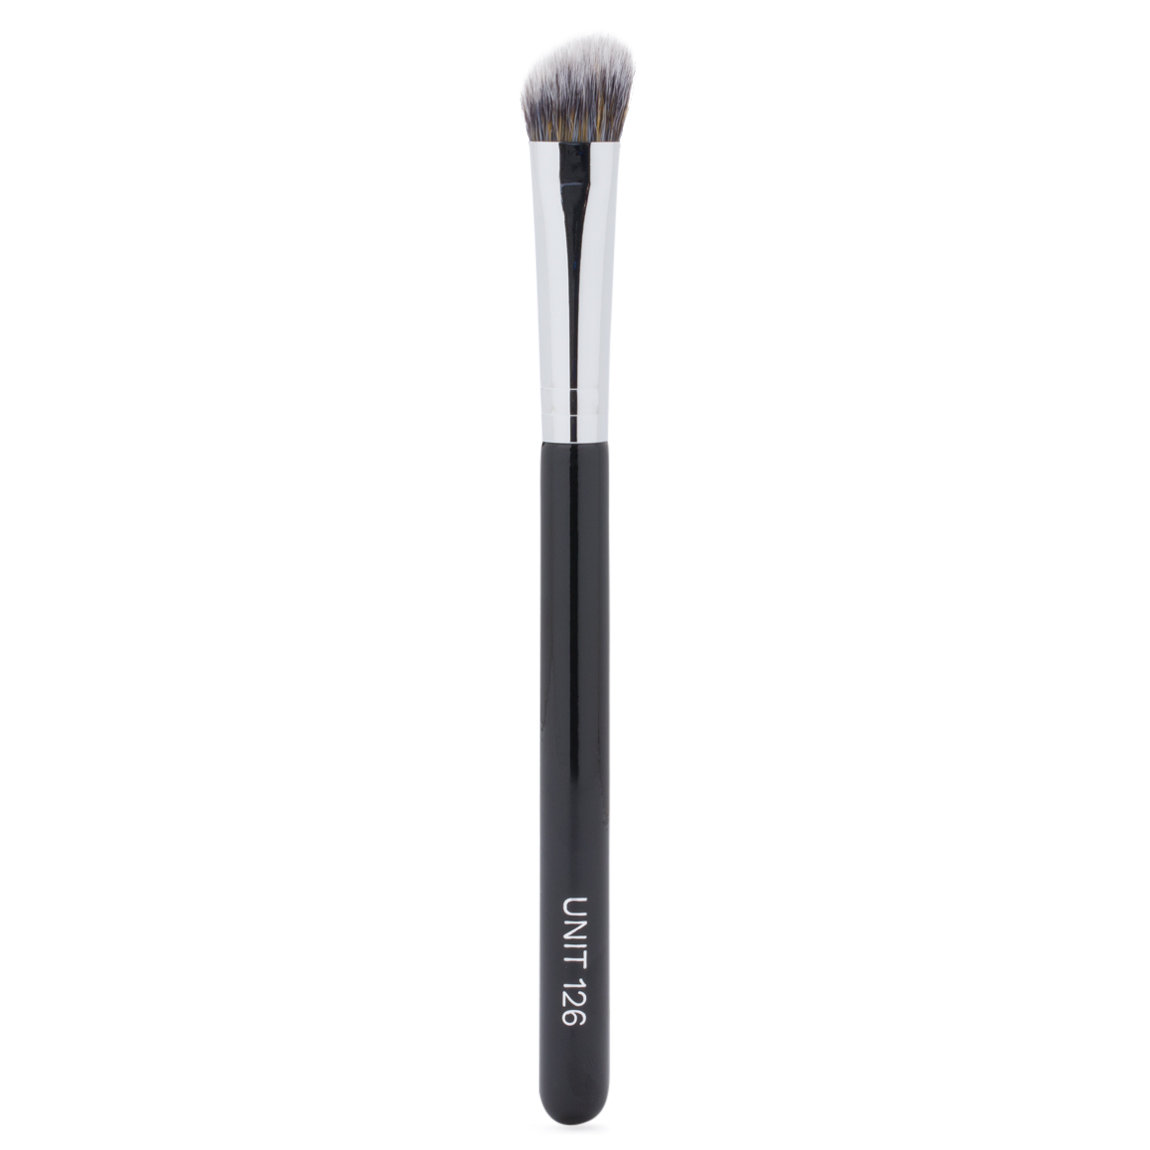 UNIT 126 Eye Brush